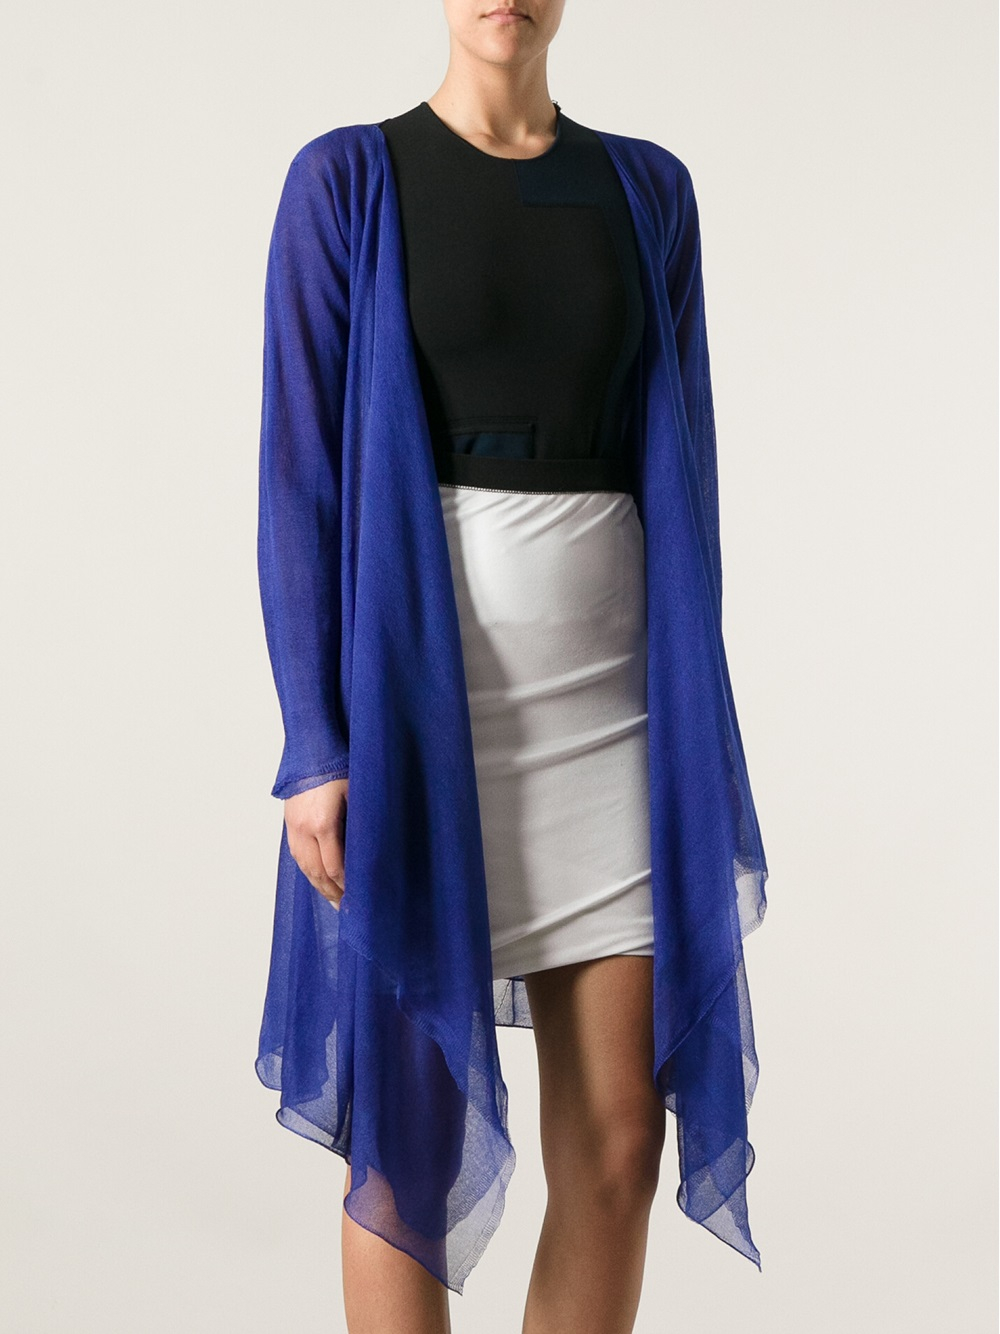 Giorgio armani Draped Sheer Cardigan in Blue | Lyst